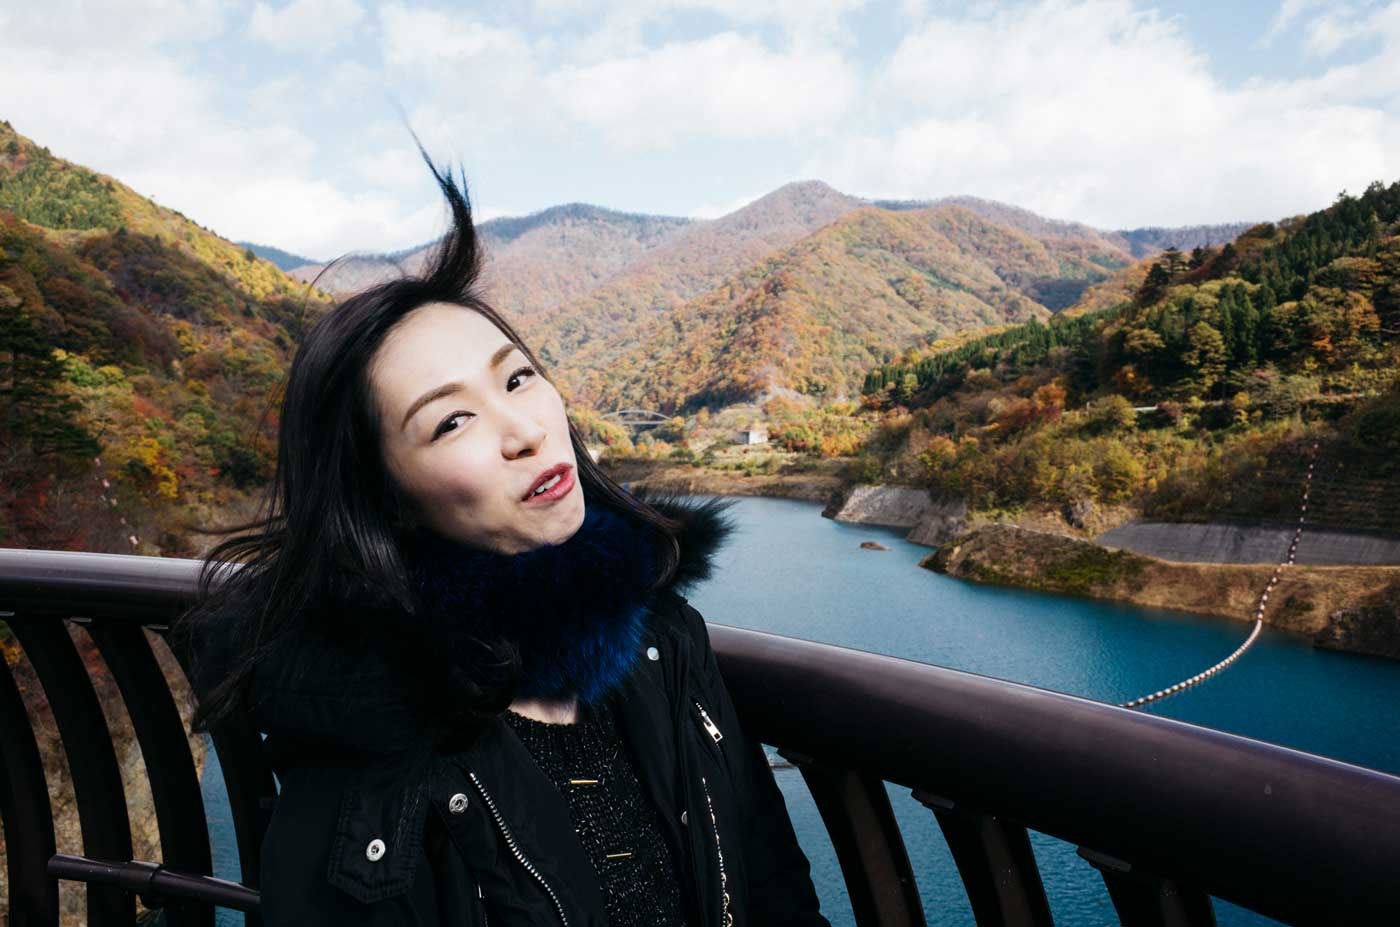 ricoh-gr-II-III-review-camera-point-and-shoot-28mm-sister-wind-blow-up-hair-japan-tokyo-outisde-countryside-lakeview